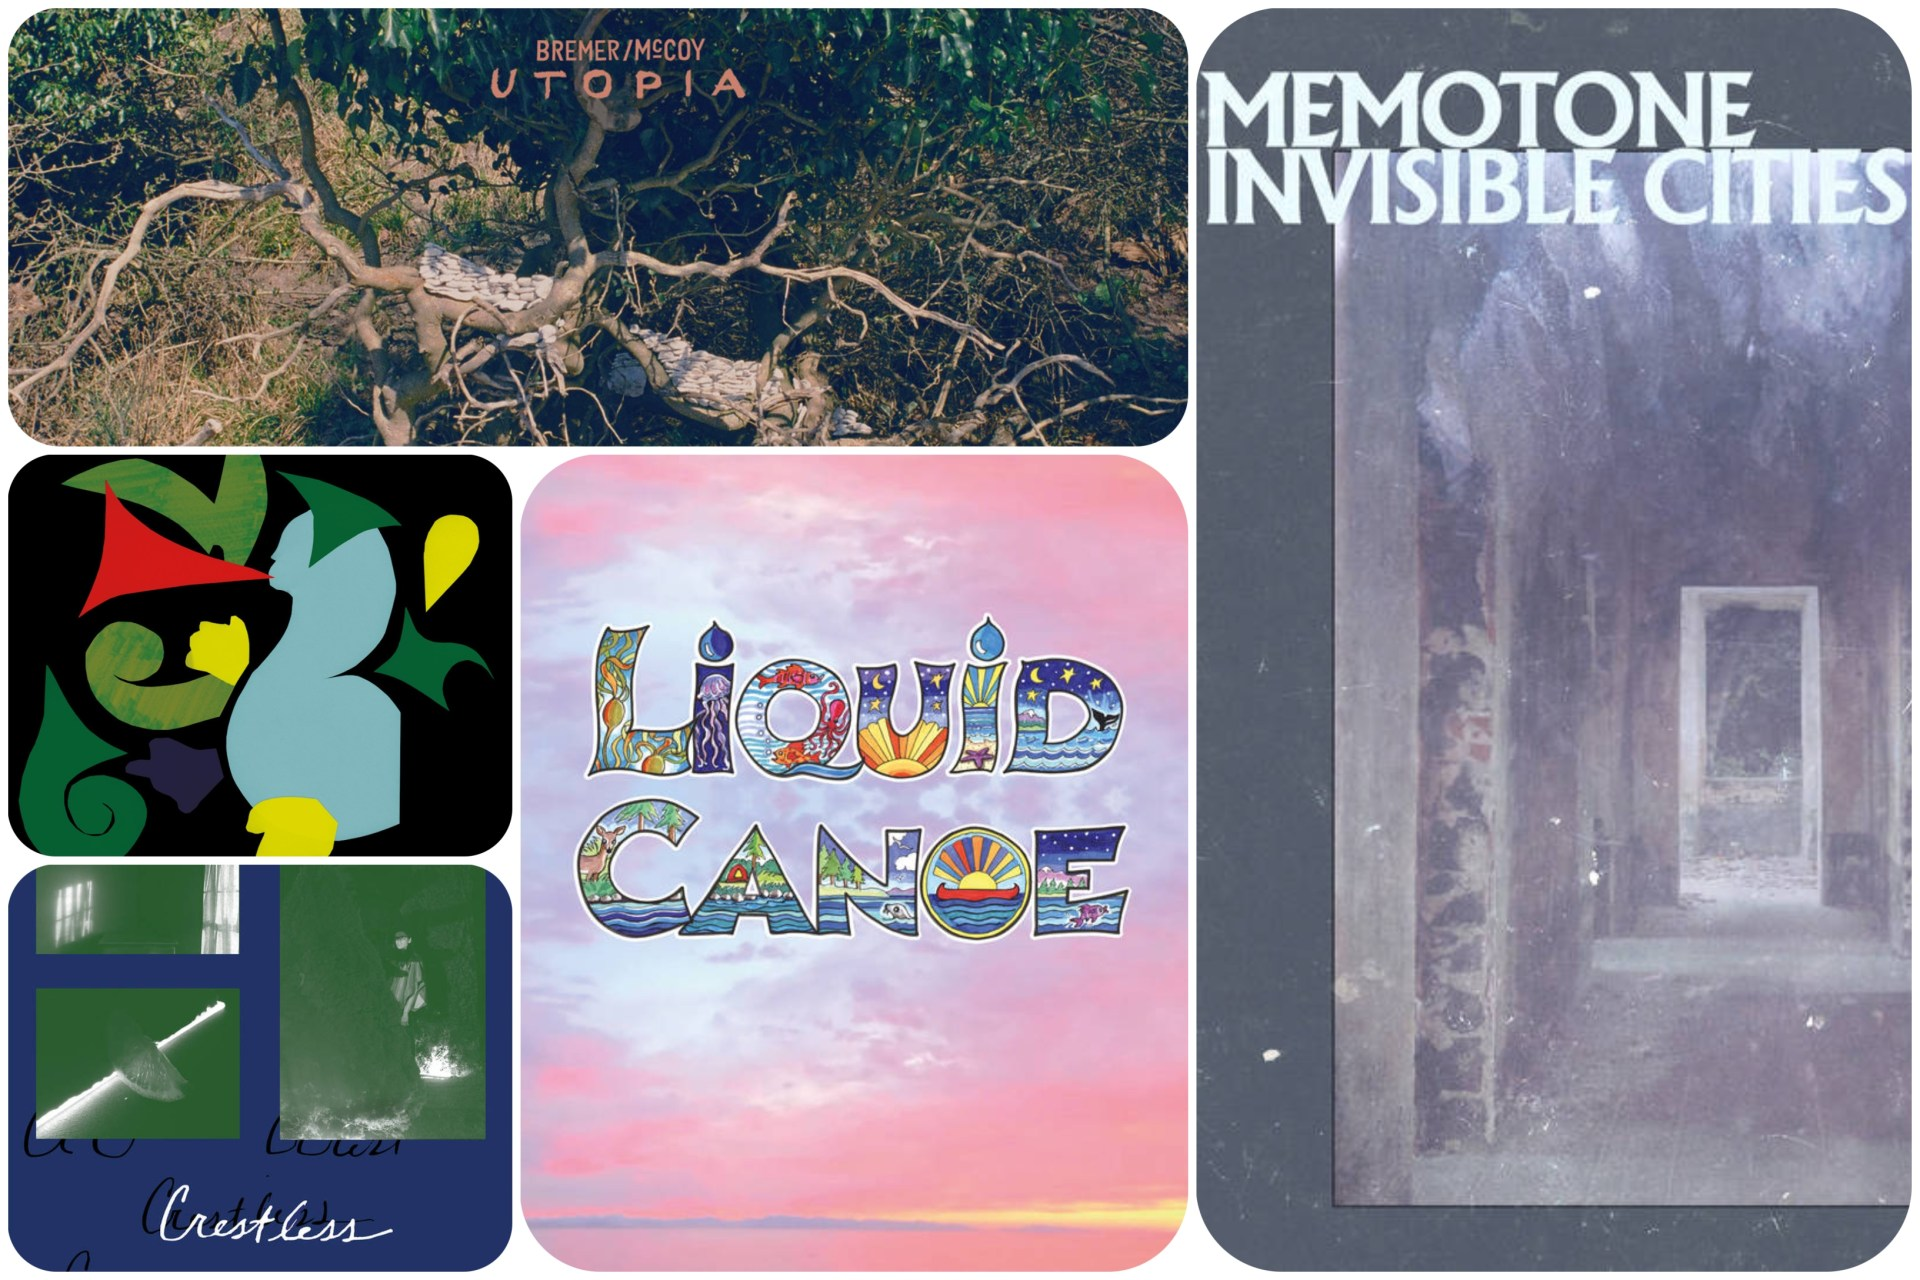 Each week we select five new albums - releases, from across the musical soundscape, that require your attention.